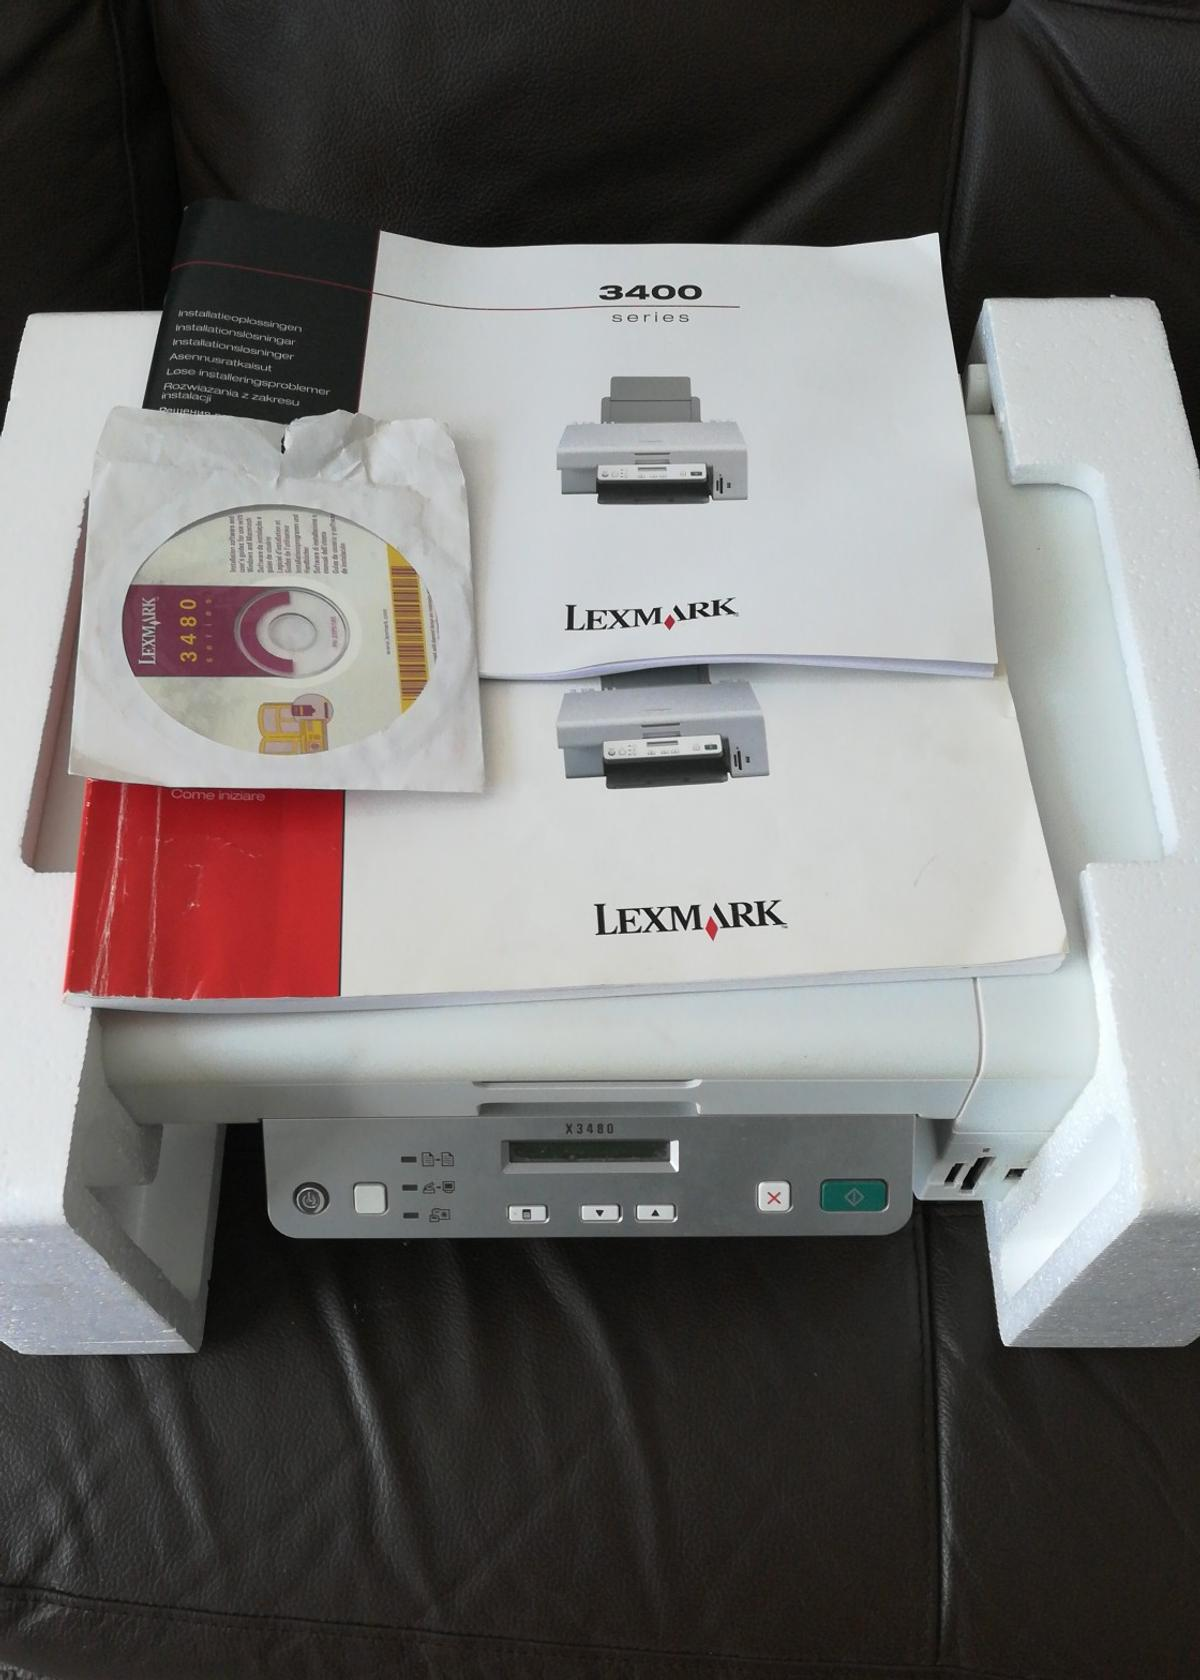 LEXMARK 3400 SERIES 64BIT DRIVER DOWNLOAD